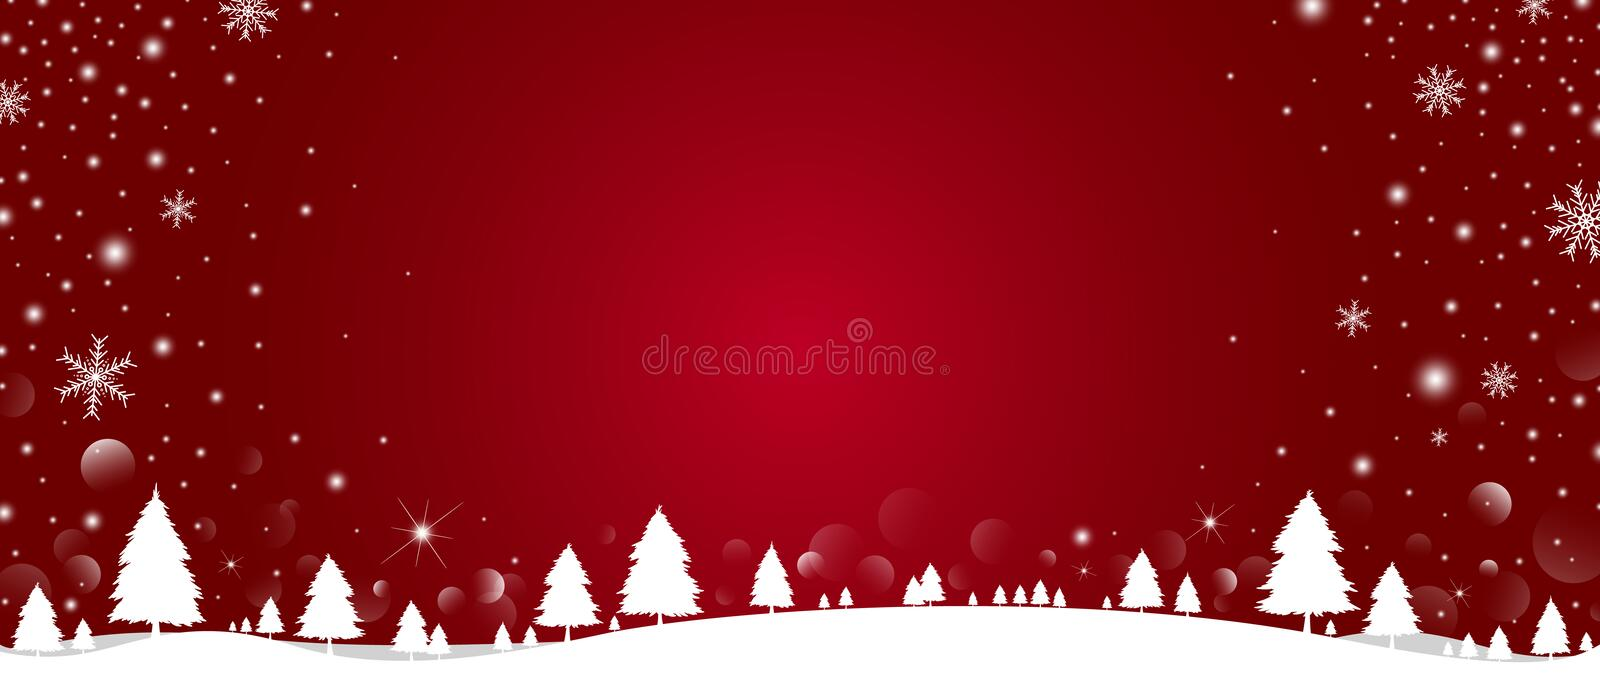 Christmas background design of pine tree and snowflake with snow falling in the winter vector illustration stock photos